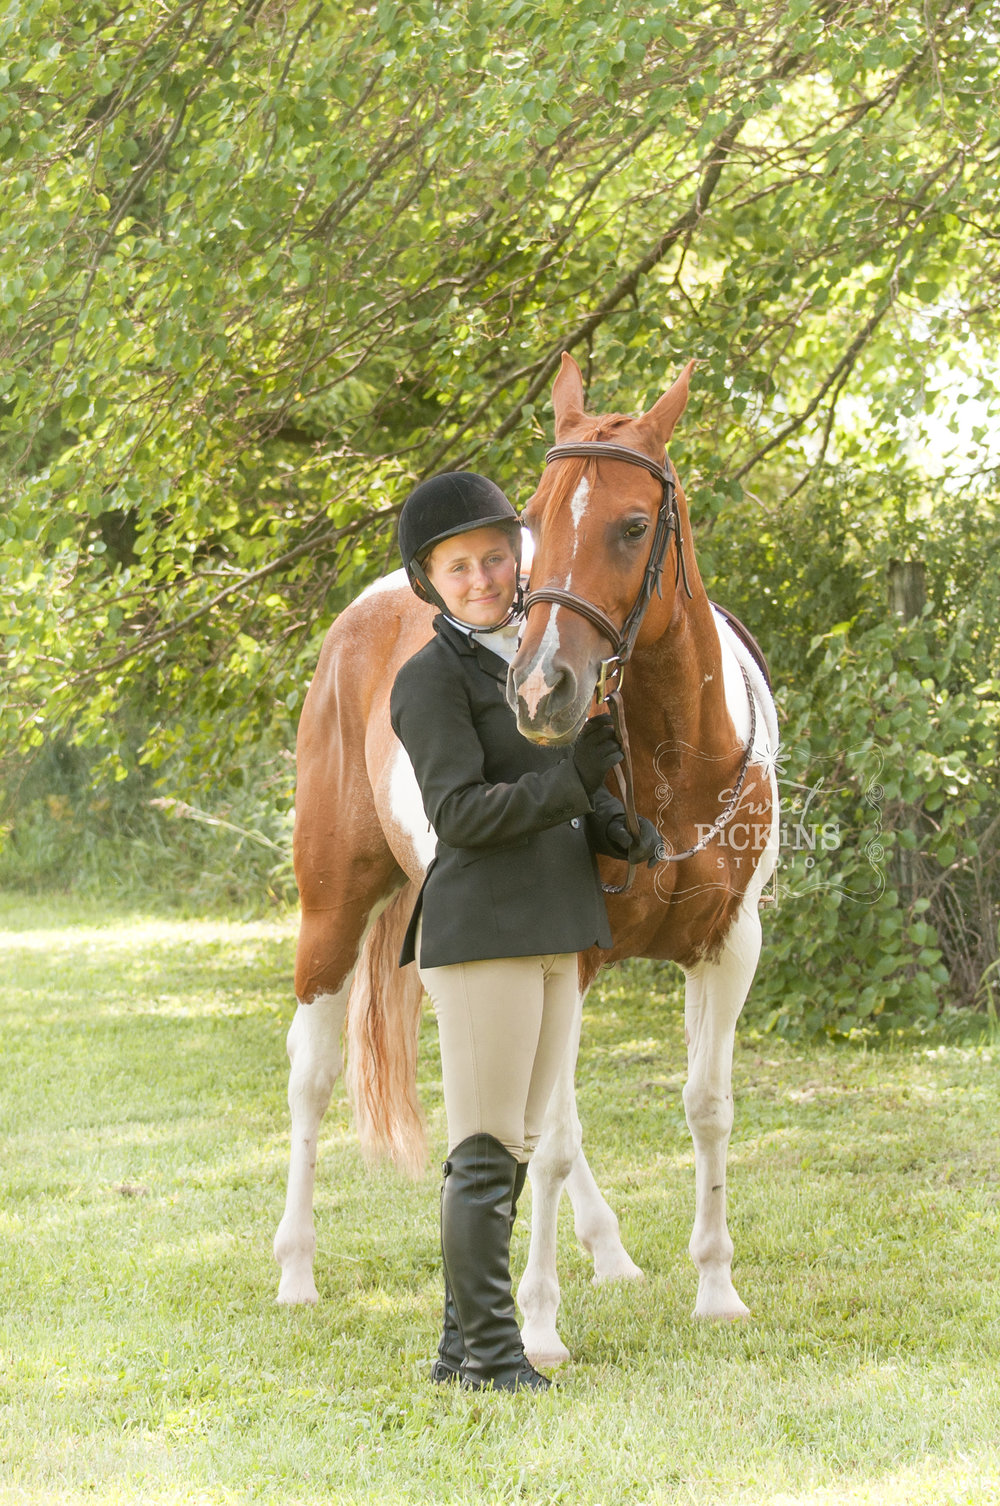 Equestrian Horse Portrait Photography Session | Sweet Pickins Studio